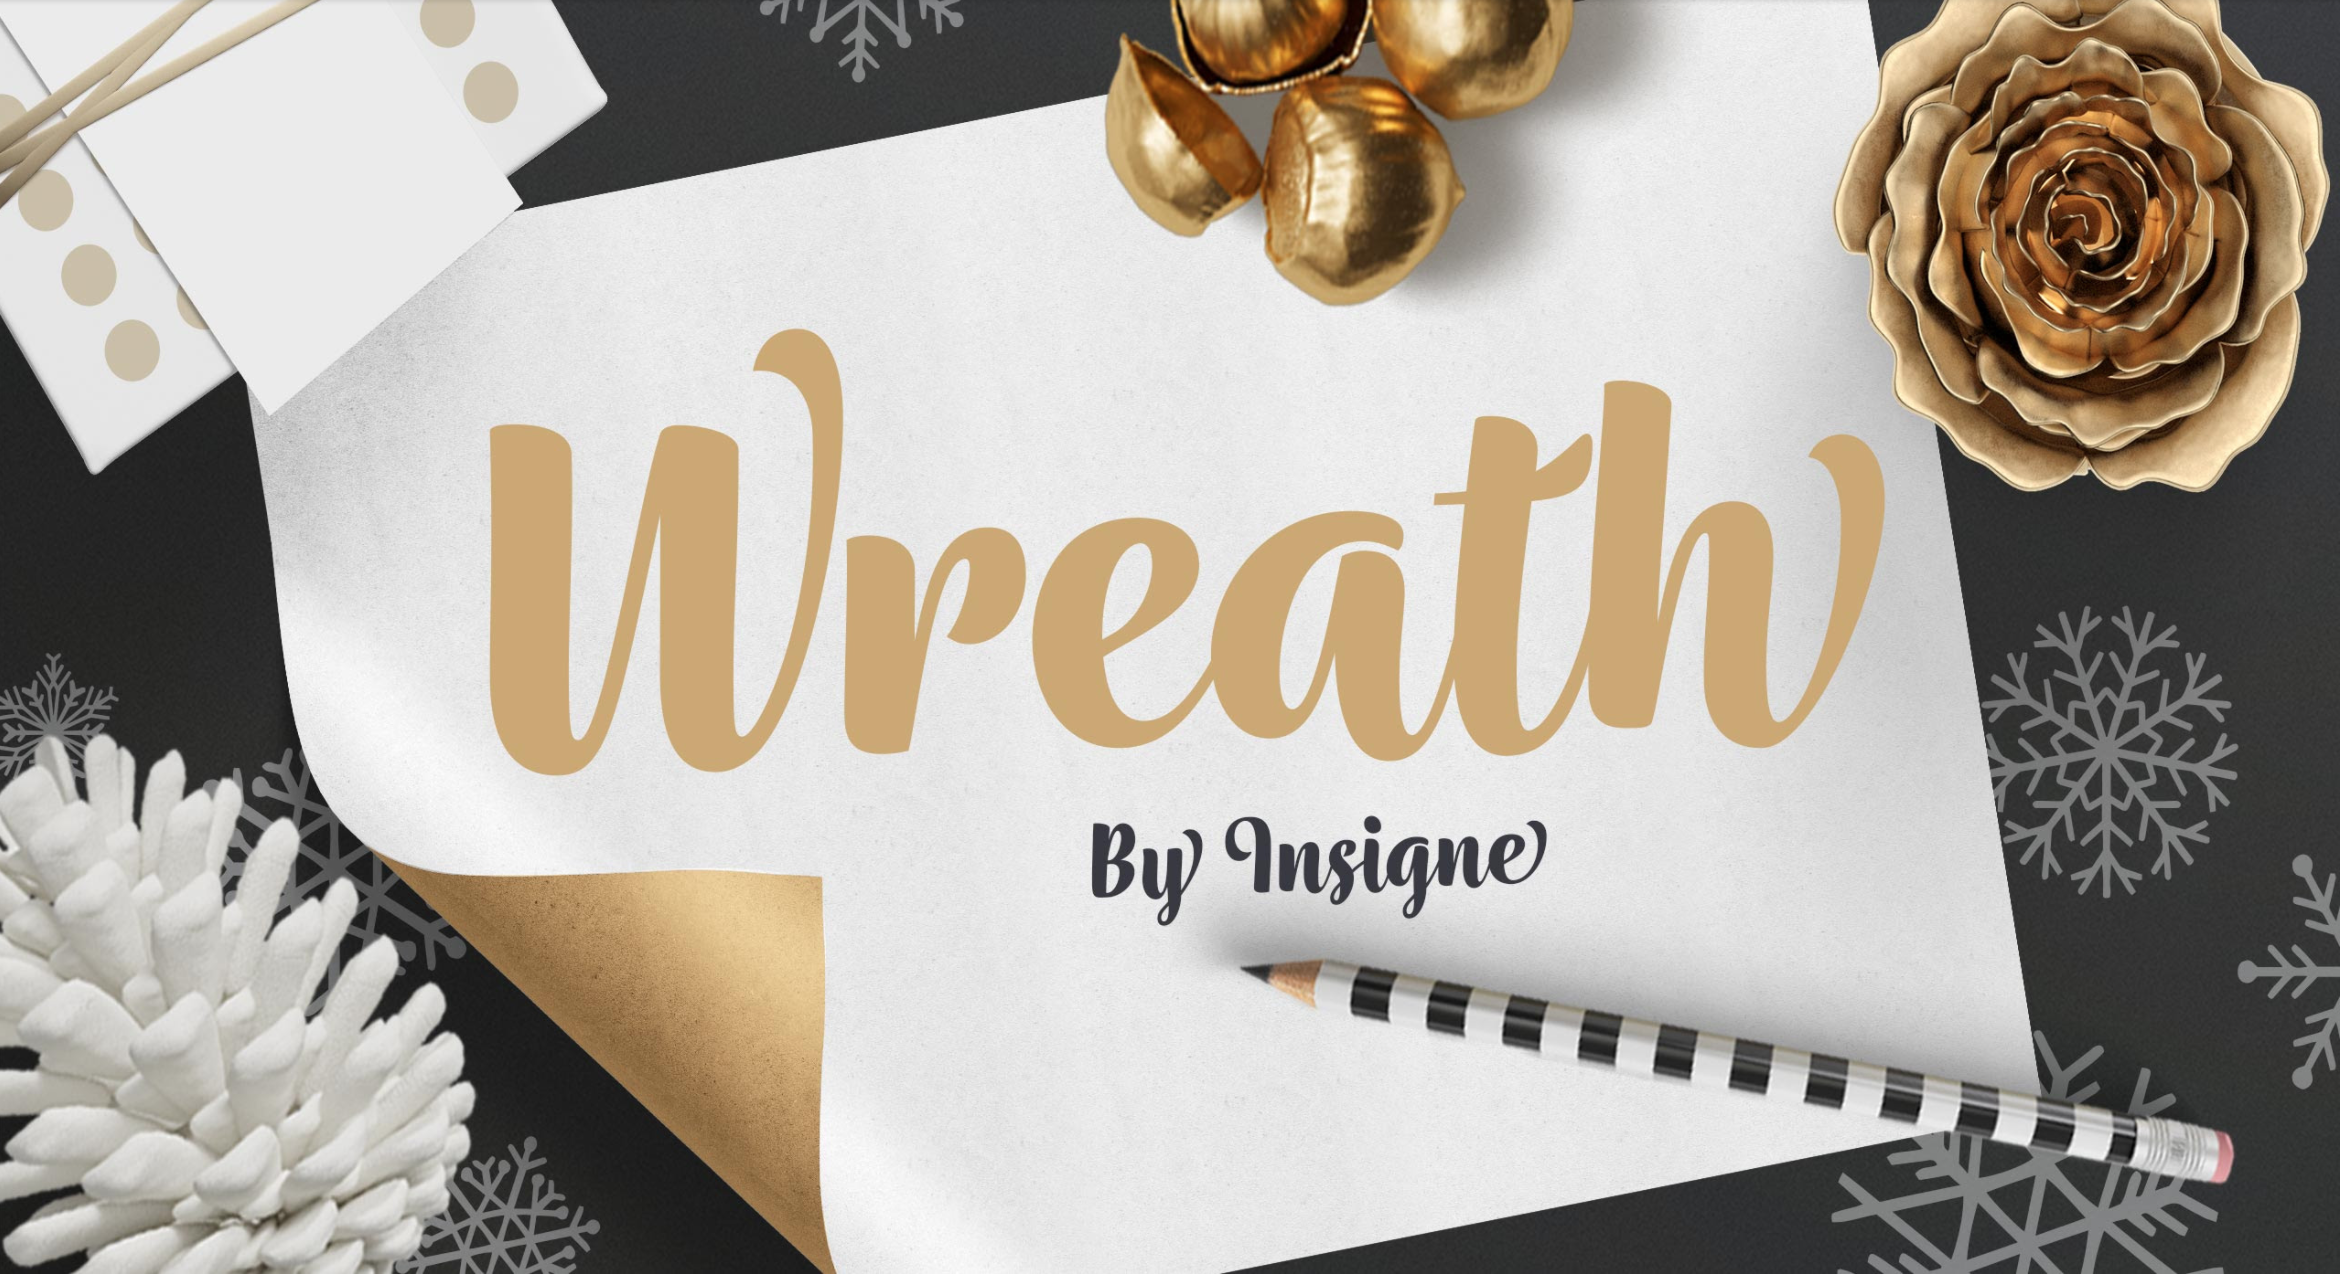 Wreath from  Insigne is a collection of 21 script fonts that includes five different texture variations to choose from, as well as companion decorative ornaments.